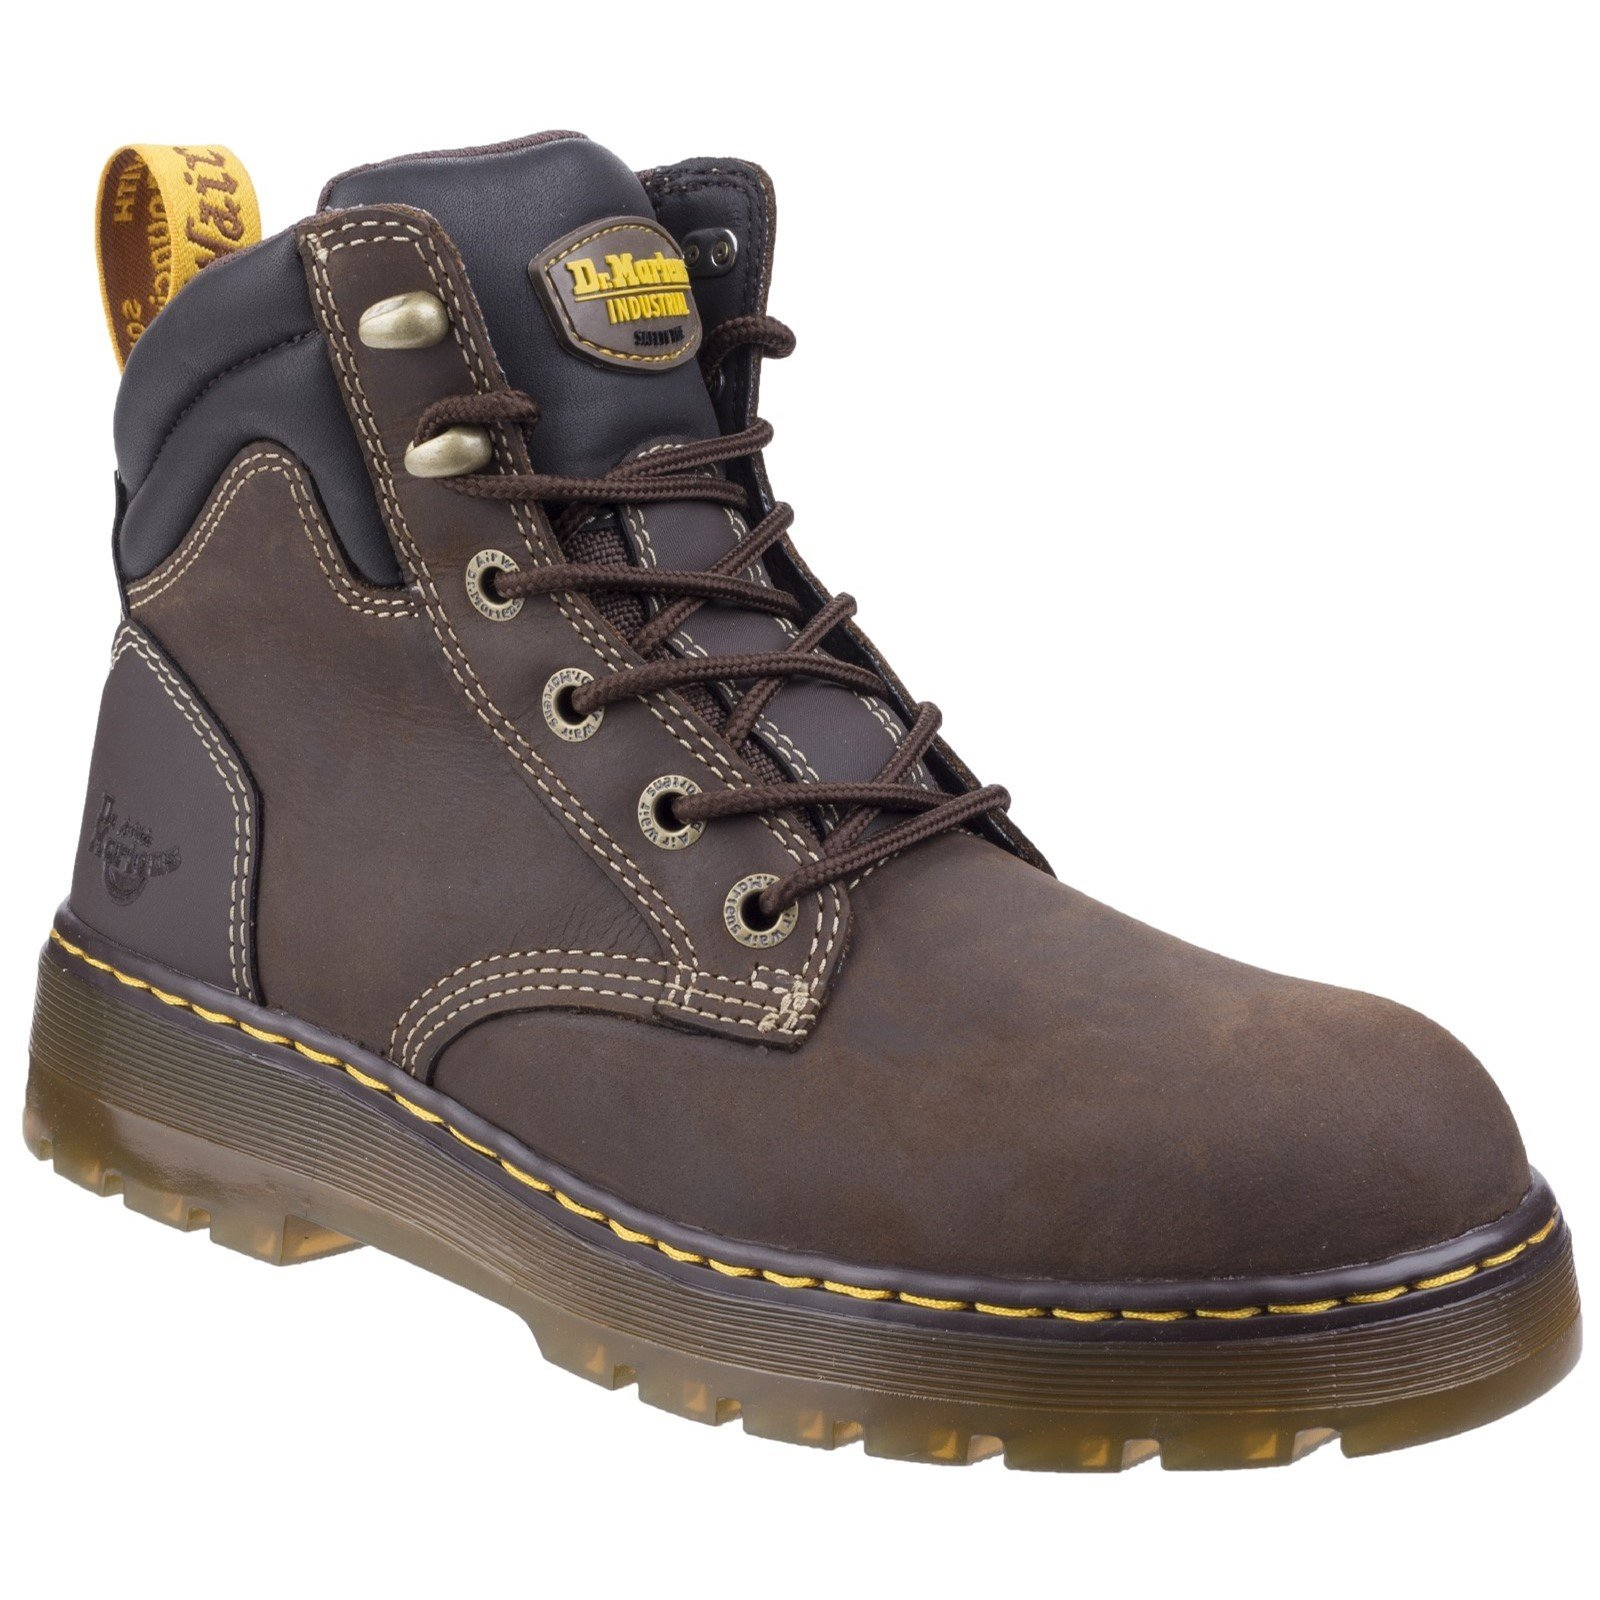 Dr Martens Unisex Brace Hiking Style Safety Boot Various Colours 27702-46606 - Dark Brown Republic 9